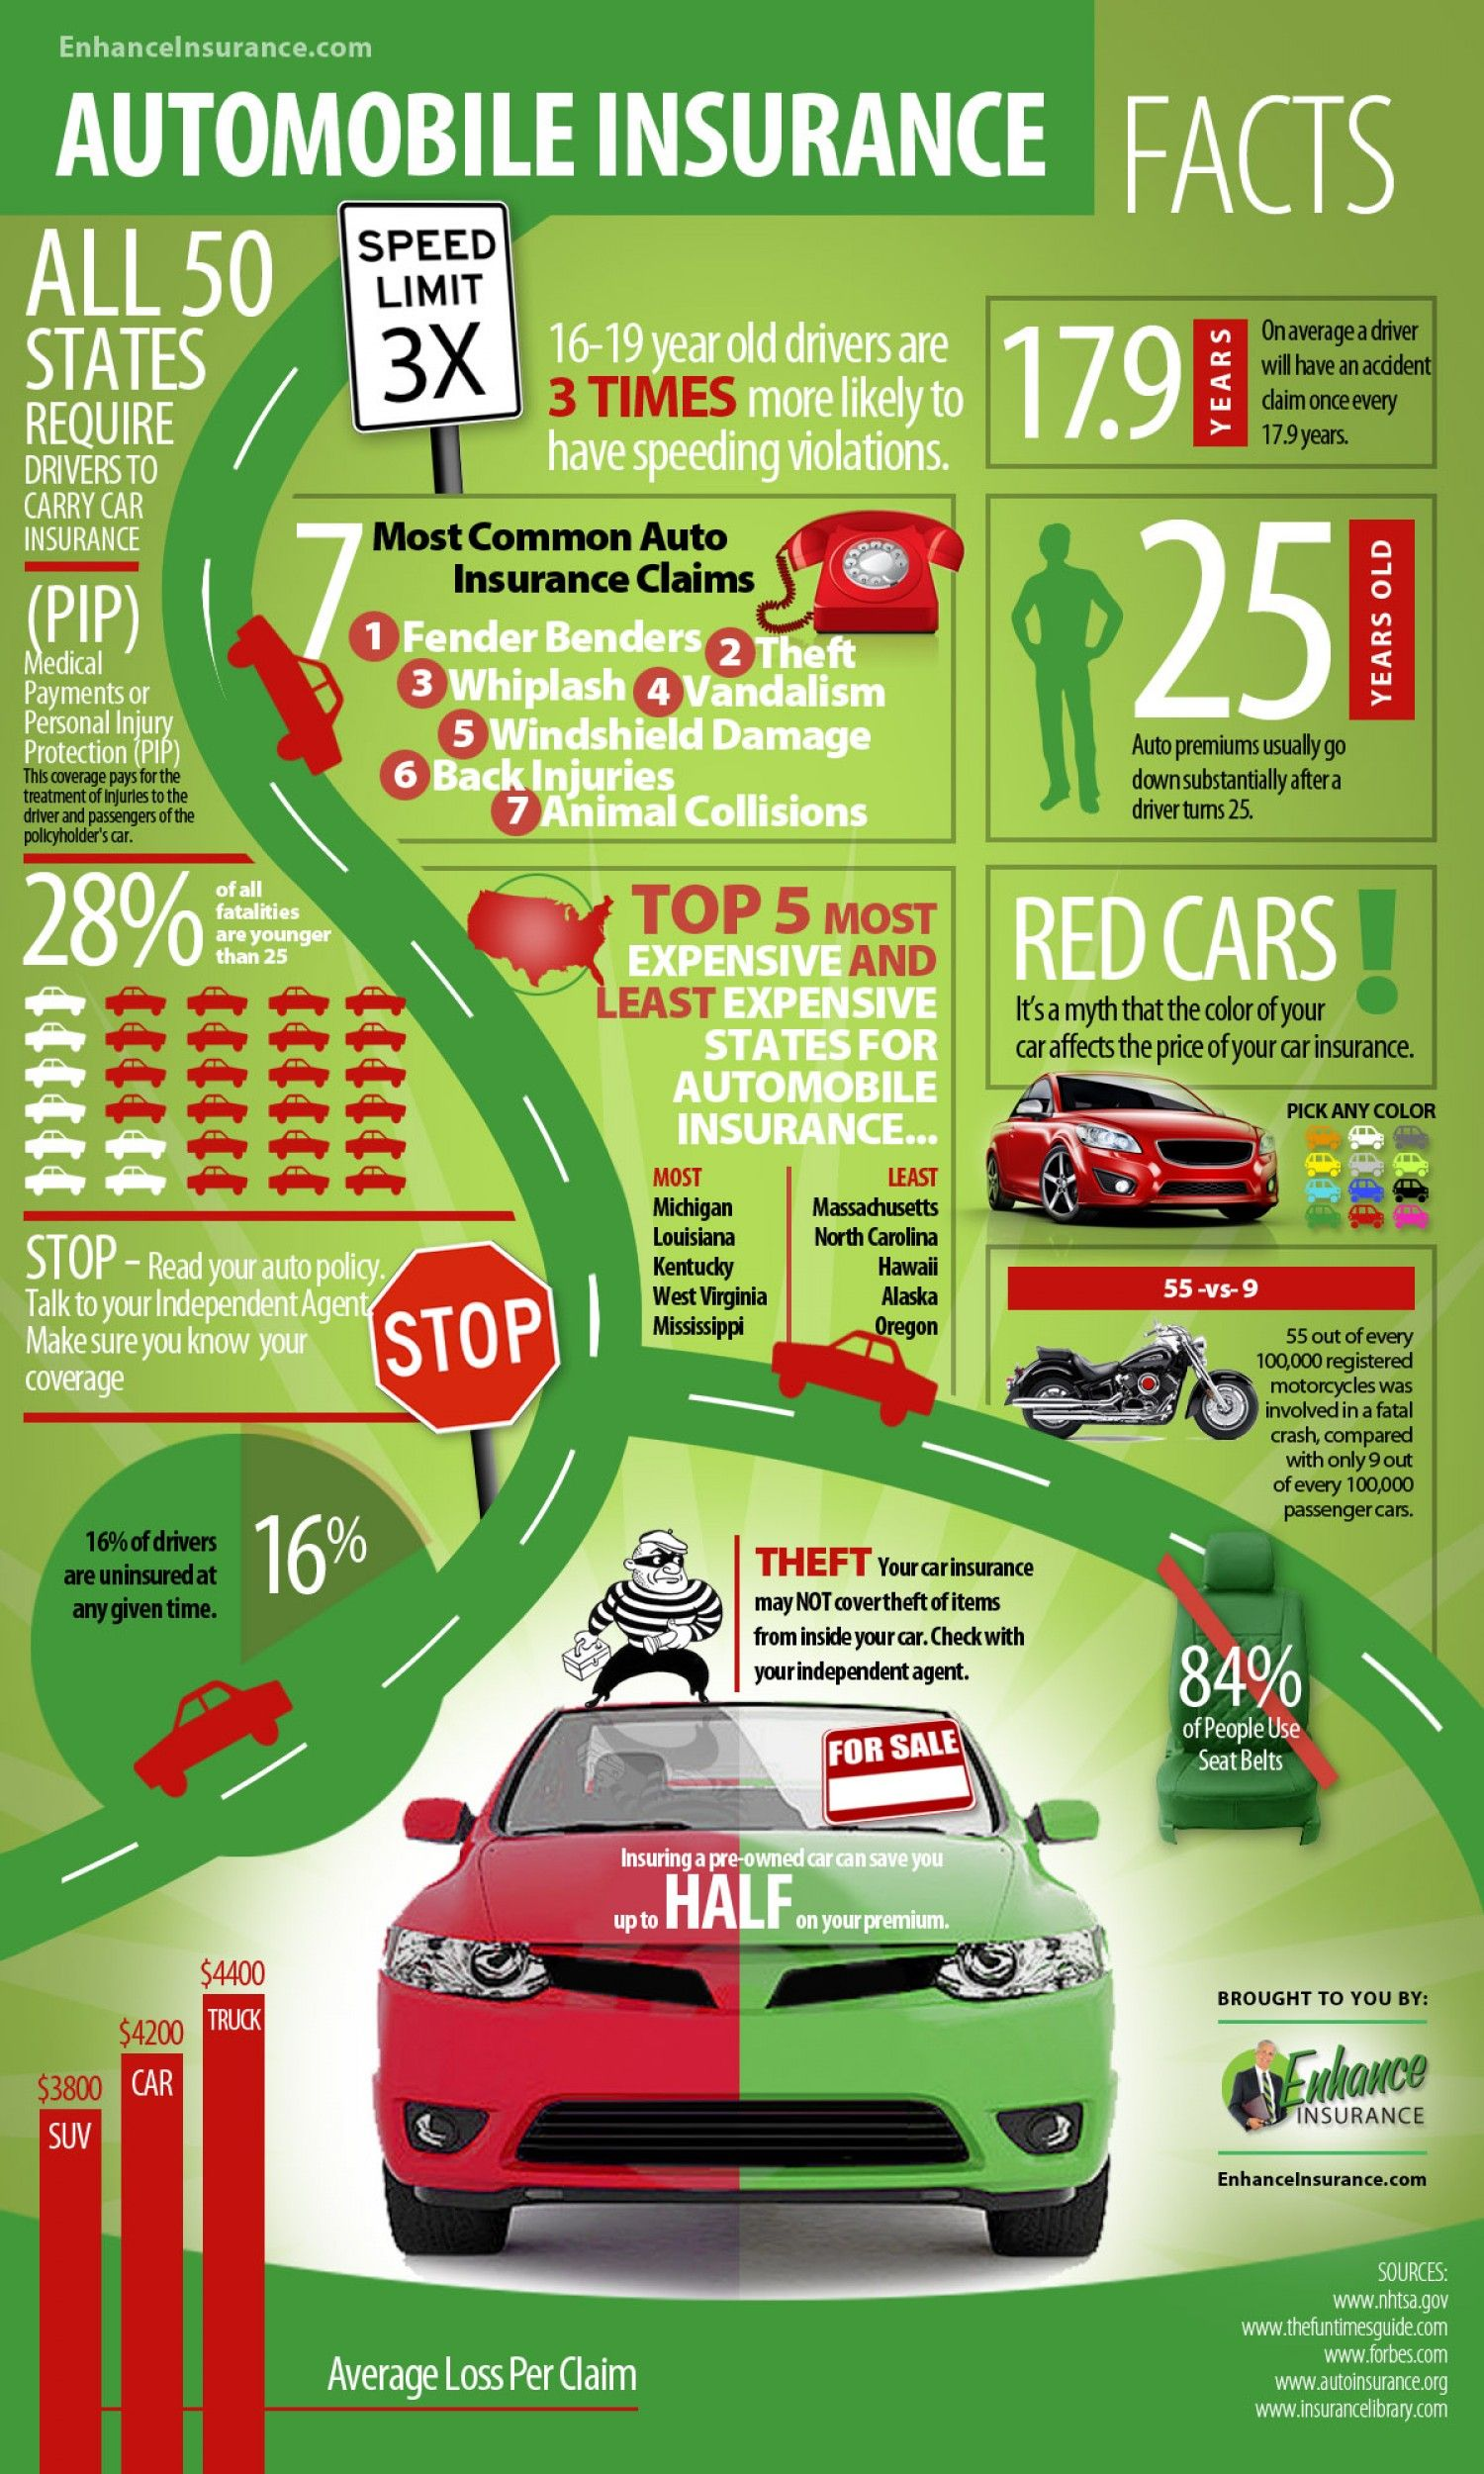 Farmers Auto Insurance Quote Auto Insurance Facts And Interesting Statistics Infographic  Car